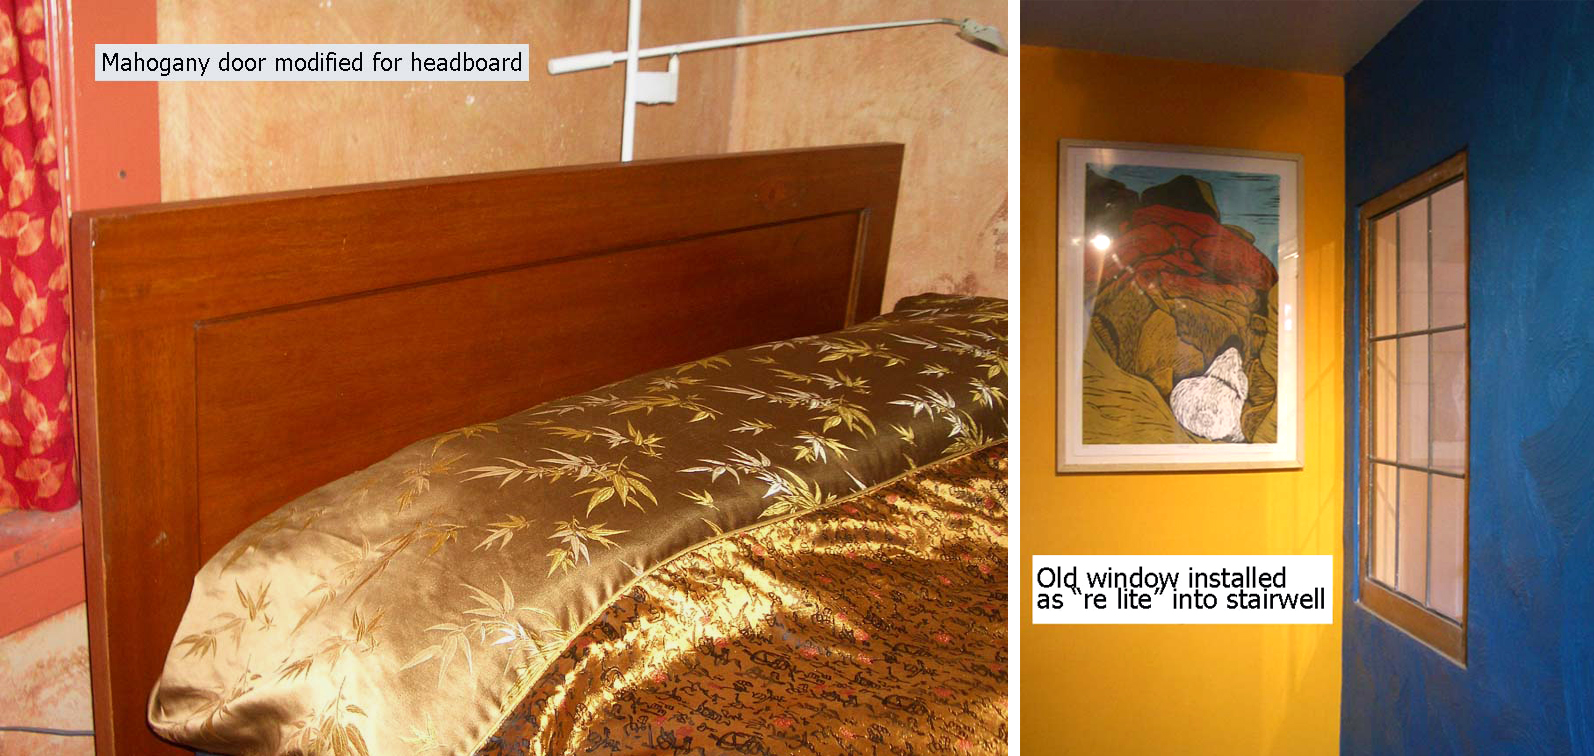 headboard and relite